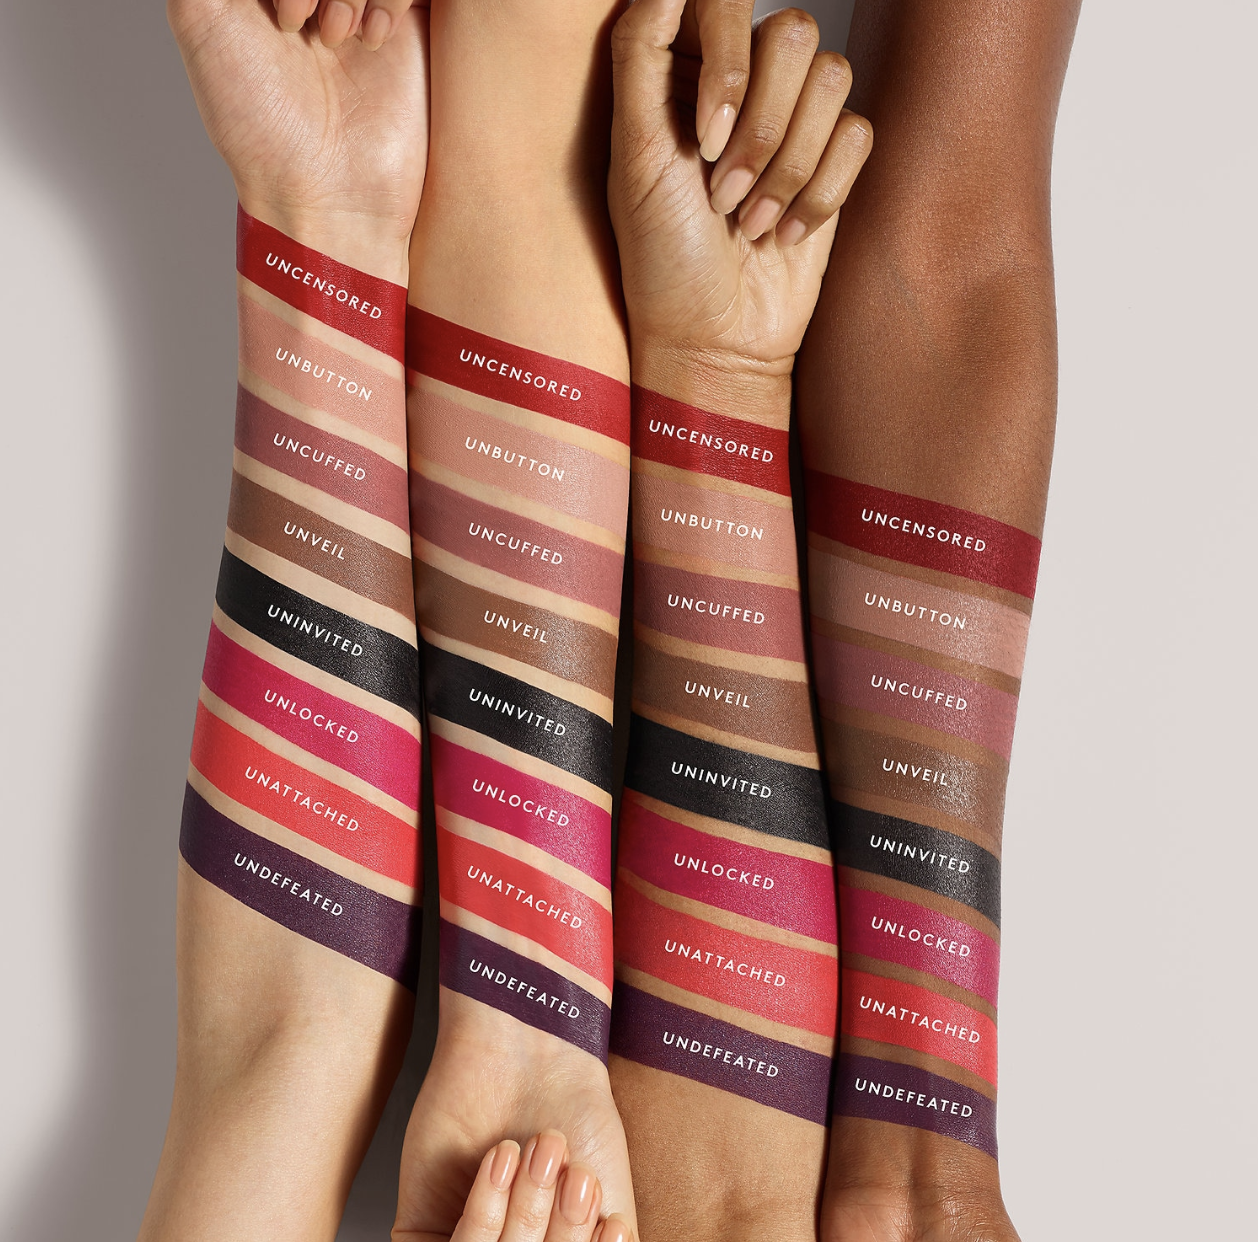 Eight lipstick swatches in colors including red, pinks, and even black and violet across arms with light, medium, tan, and deep skin tones